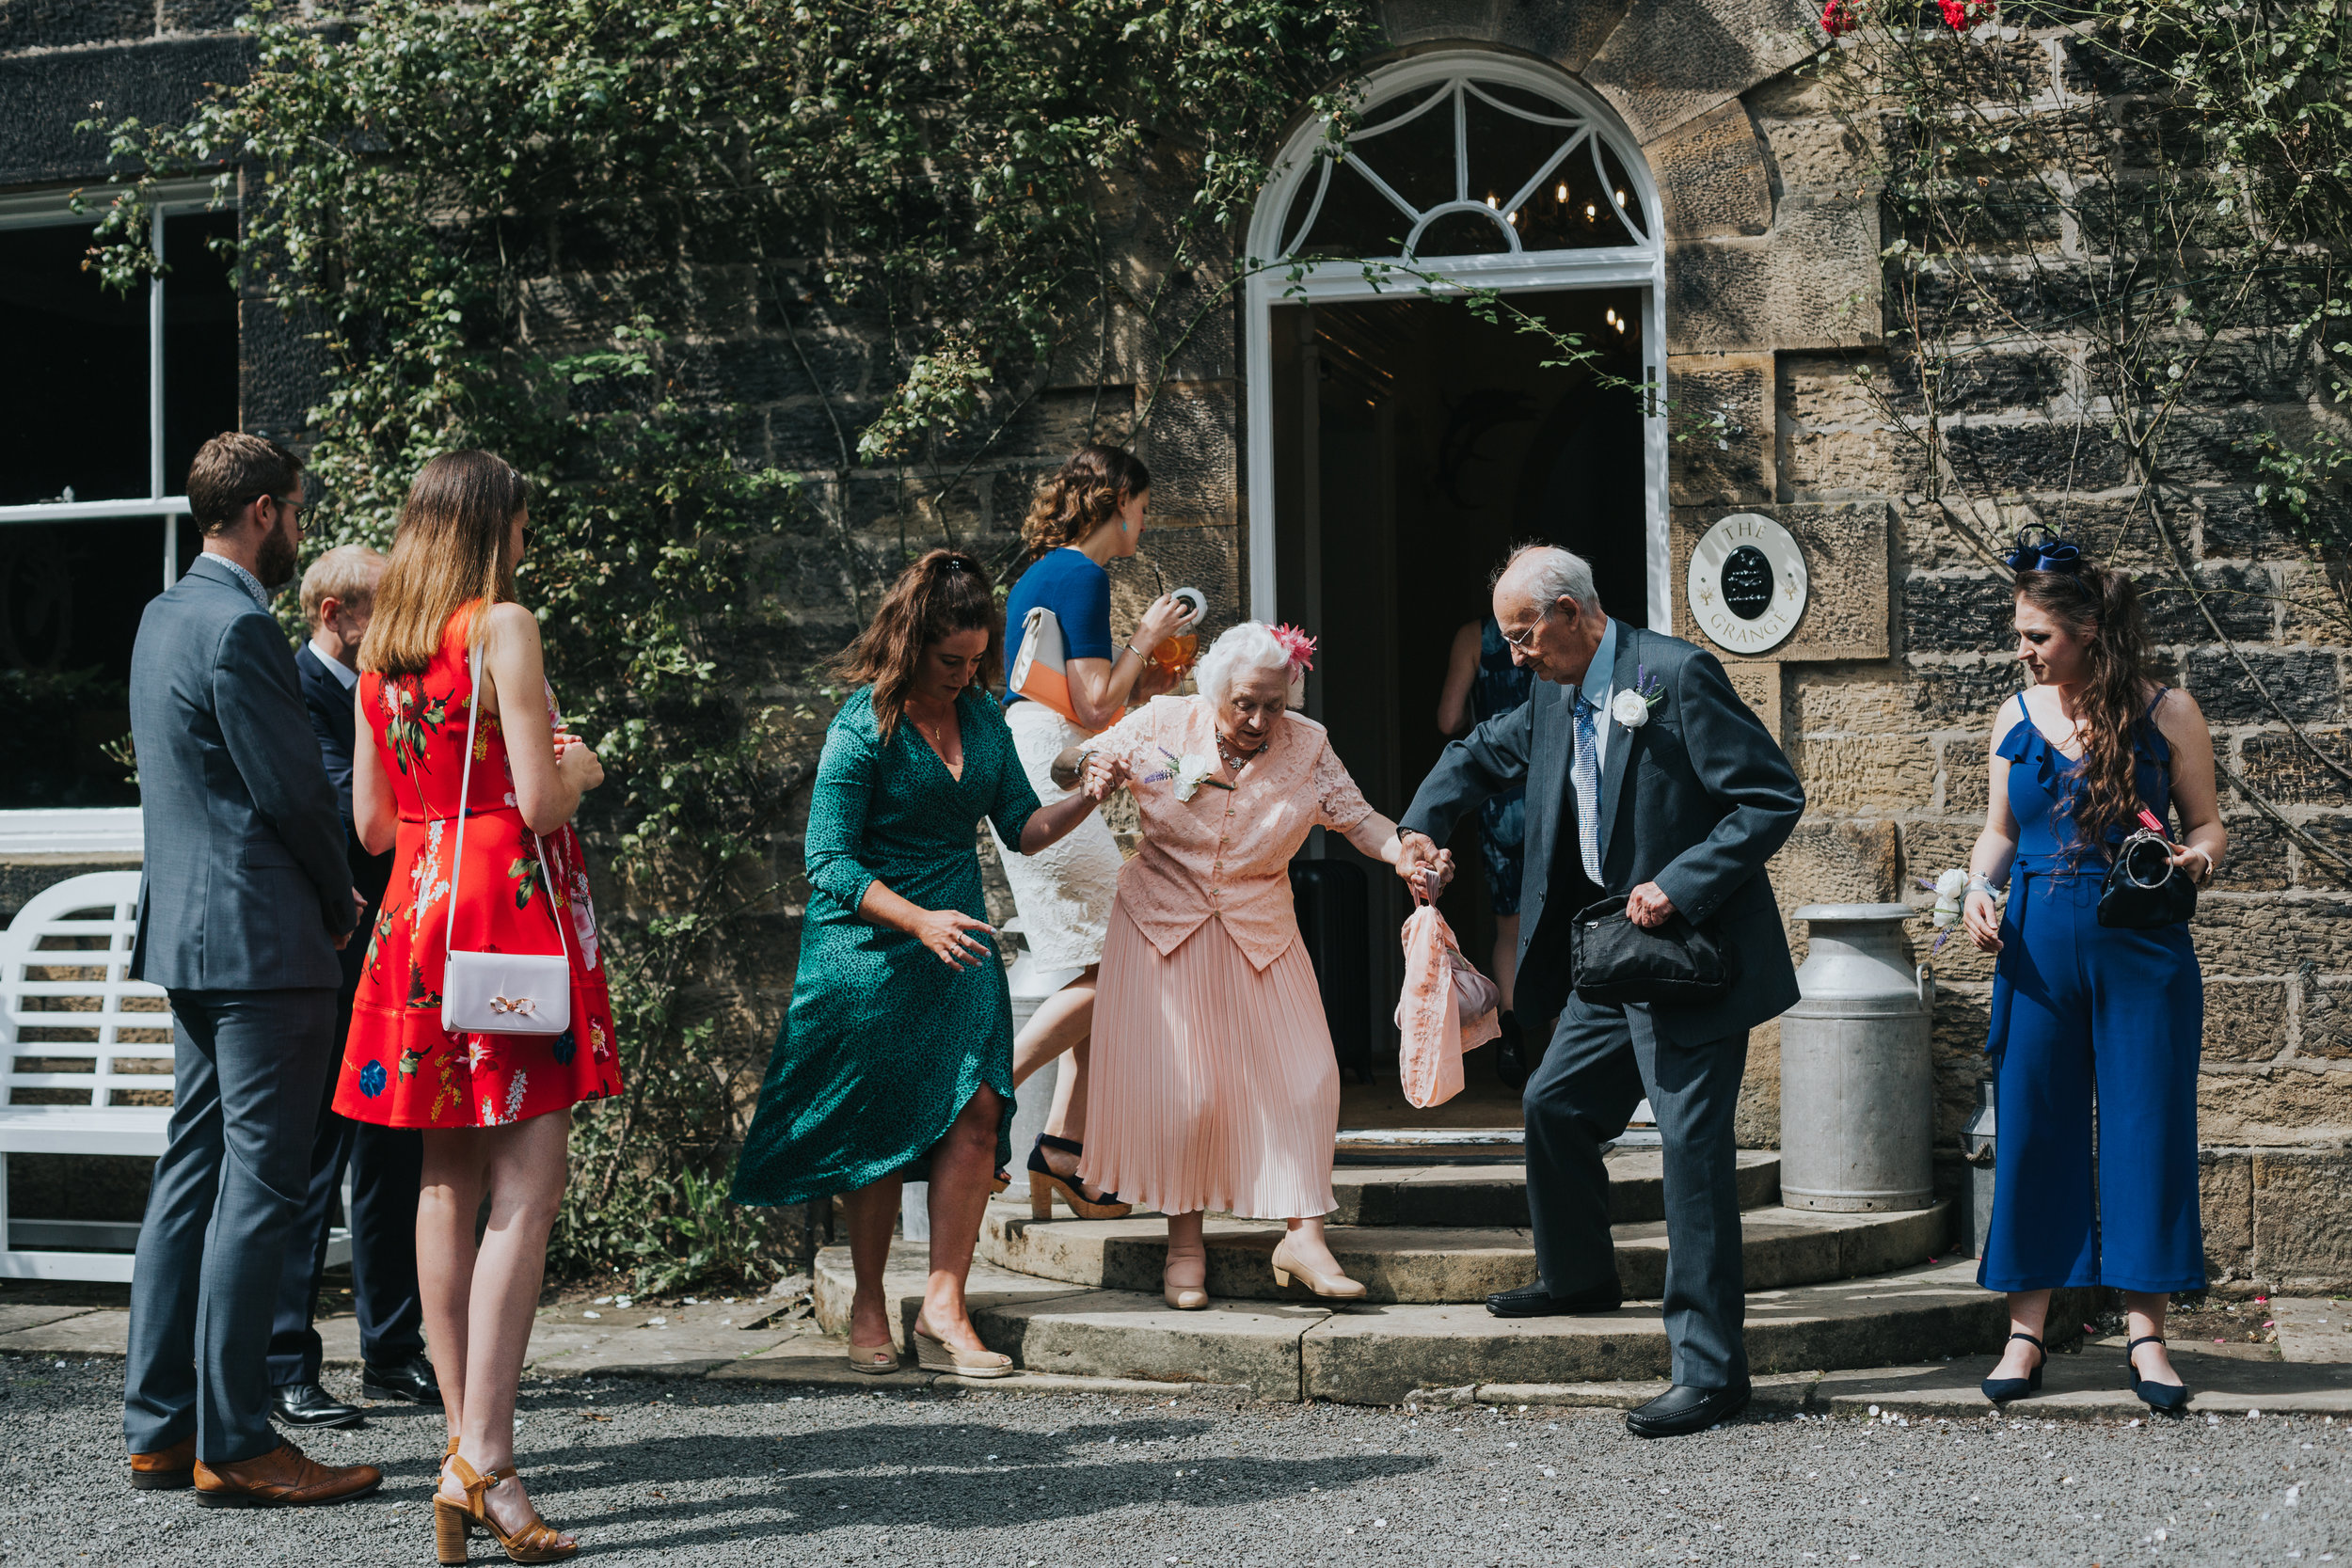 Guests help Grandma down the steps.